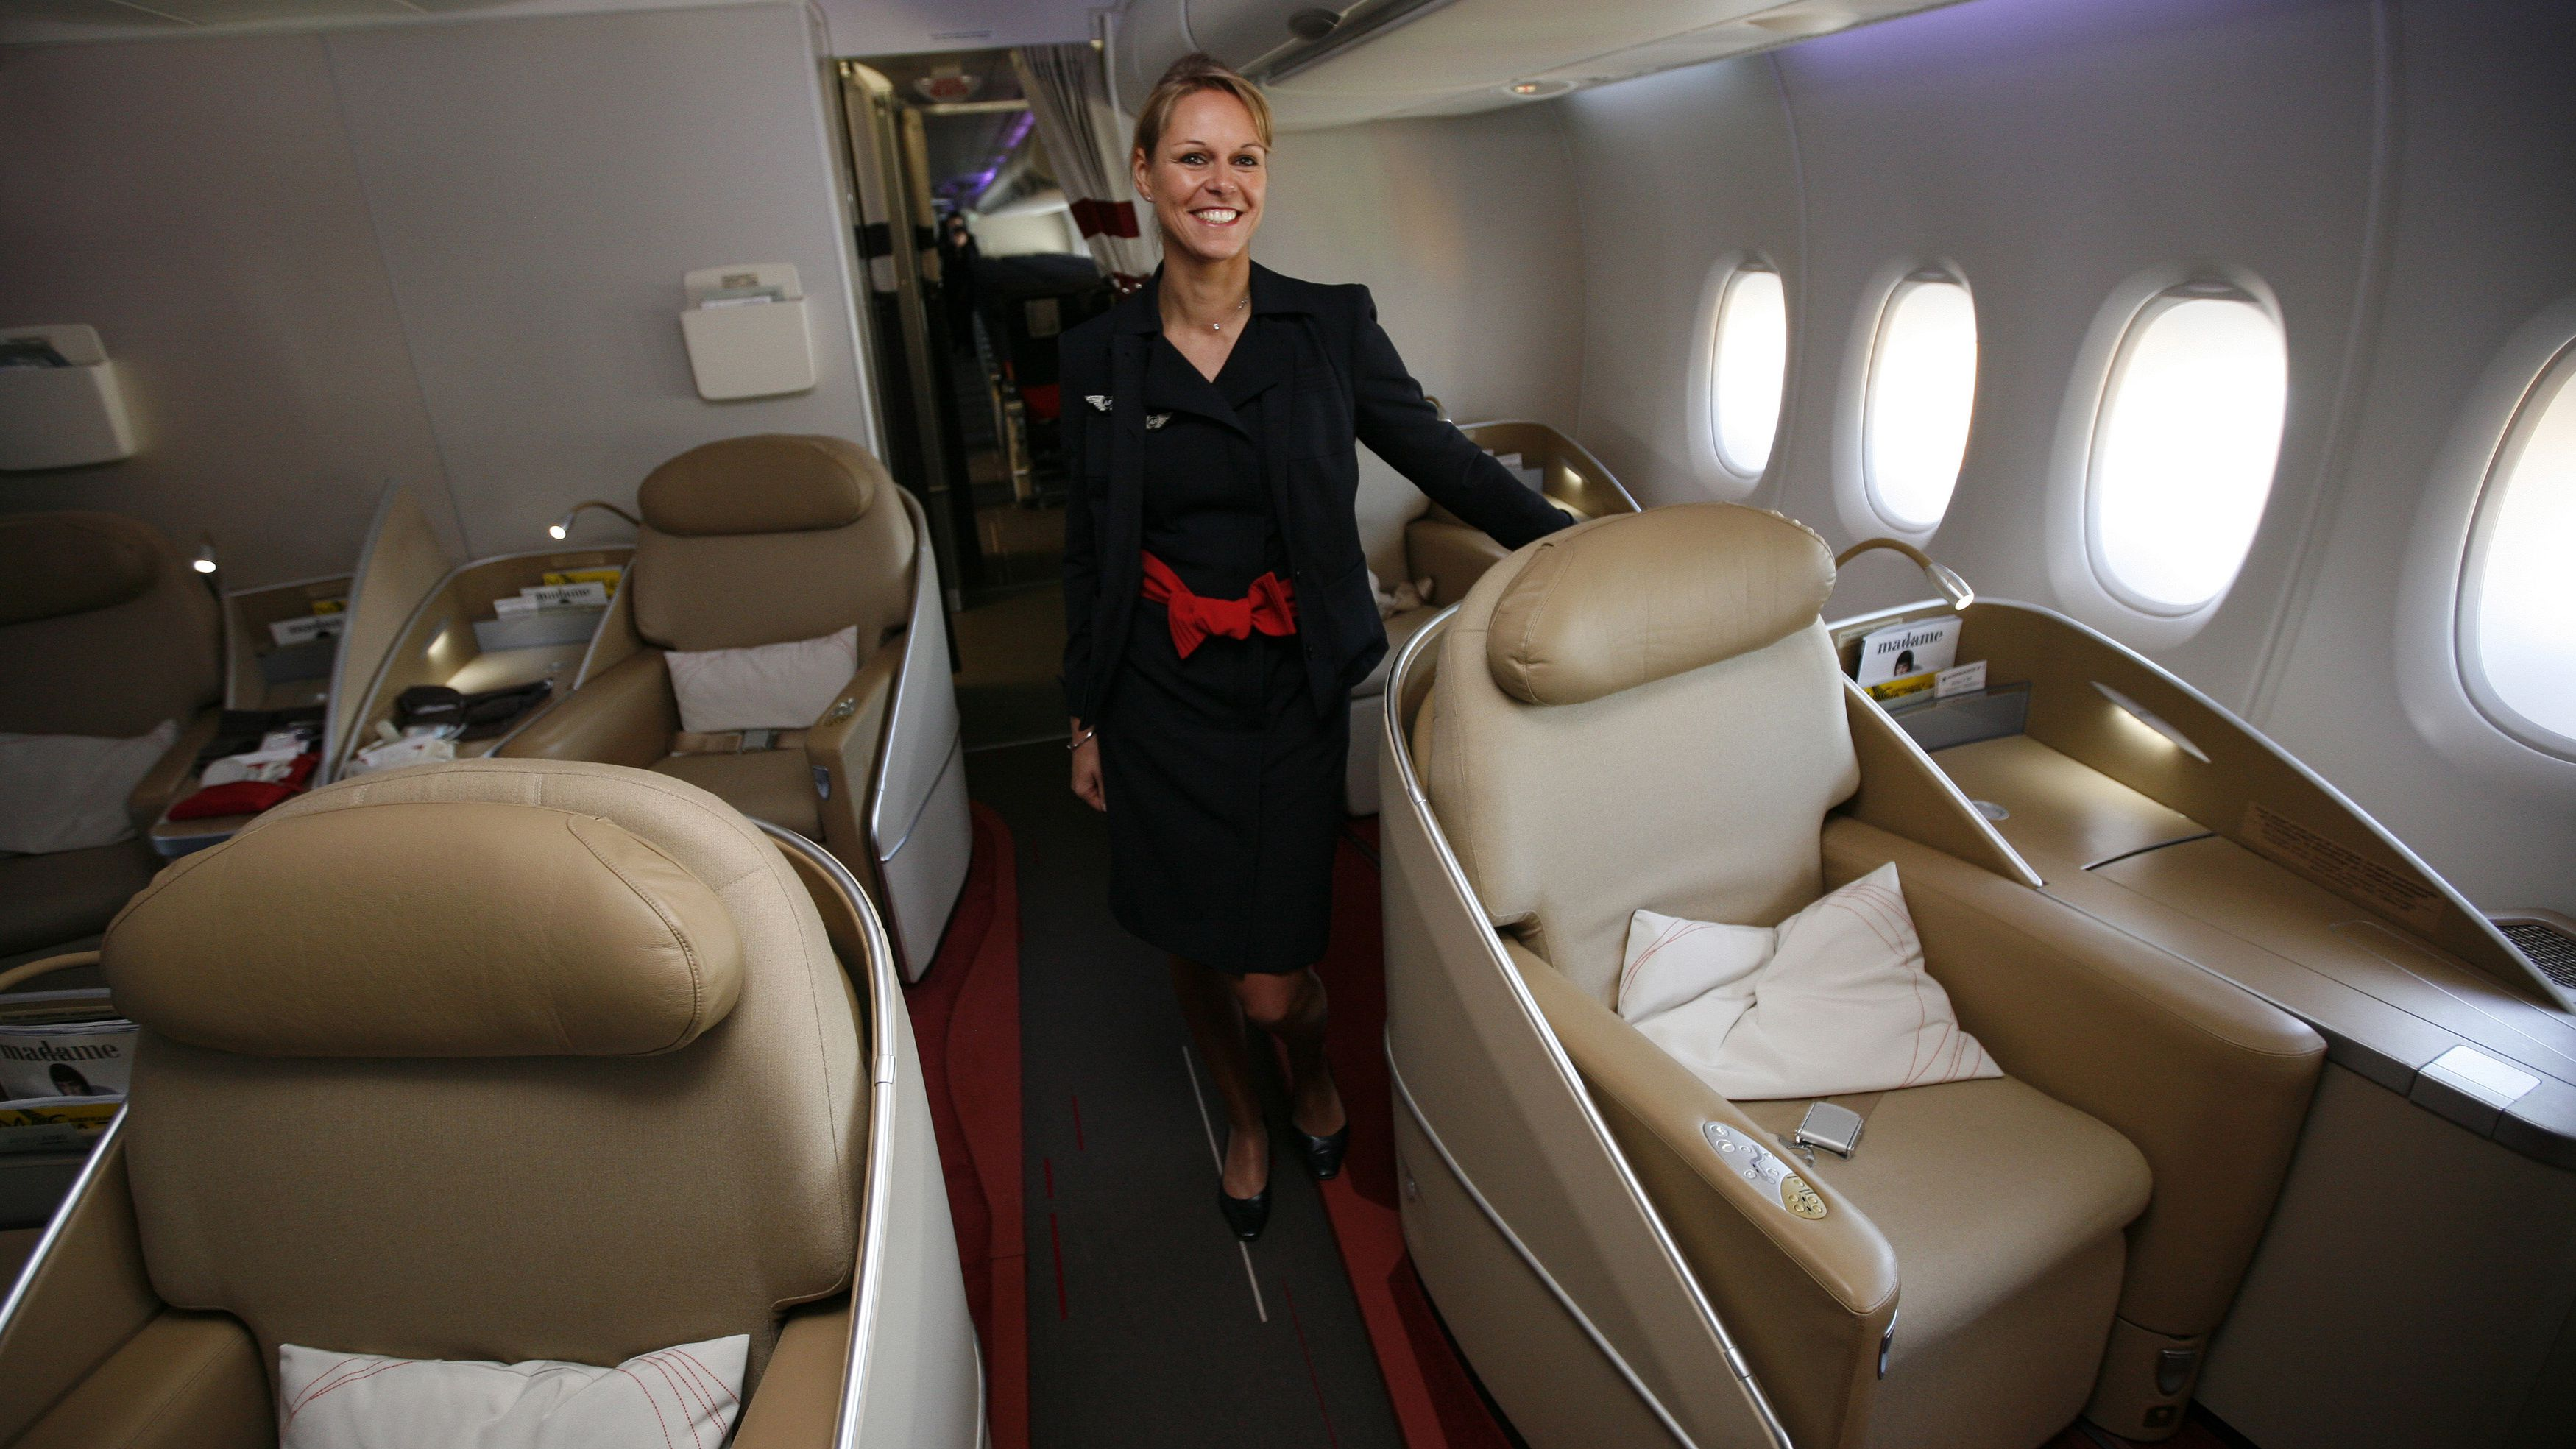 An Air France KLM flight attendant poses at the first class cabin of new Airbus A380 aircraft during a hand-over ceremony at the manufacturer's site in Finkenwerder near Hamburg October 30, 2009. Air France has taken delivery of its first Airbus A380 on Friday as the first European airline to fly the double-deck aircraft on scheduled services. REUTERS/Christian Charisius